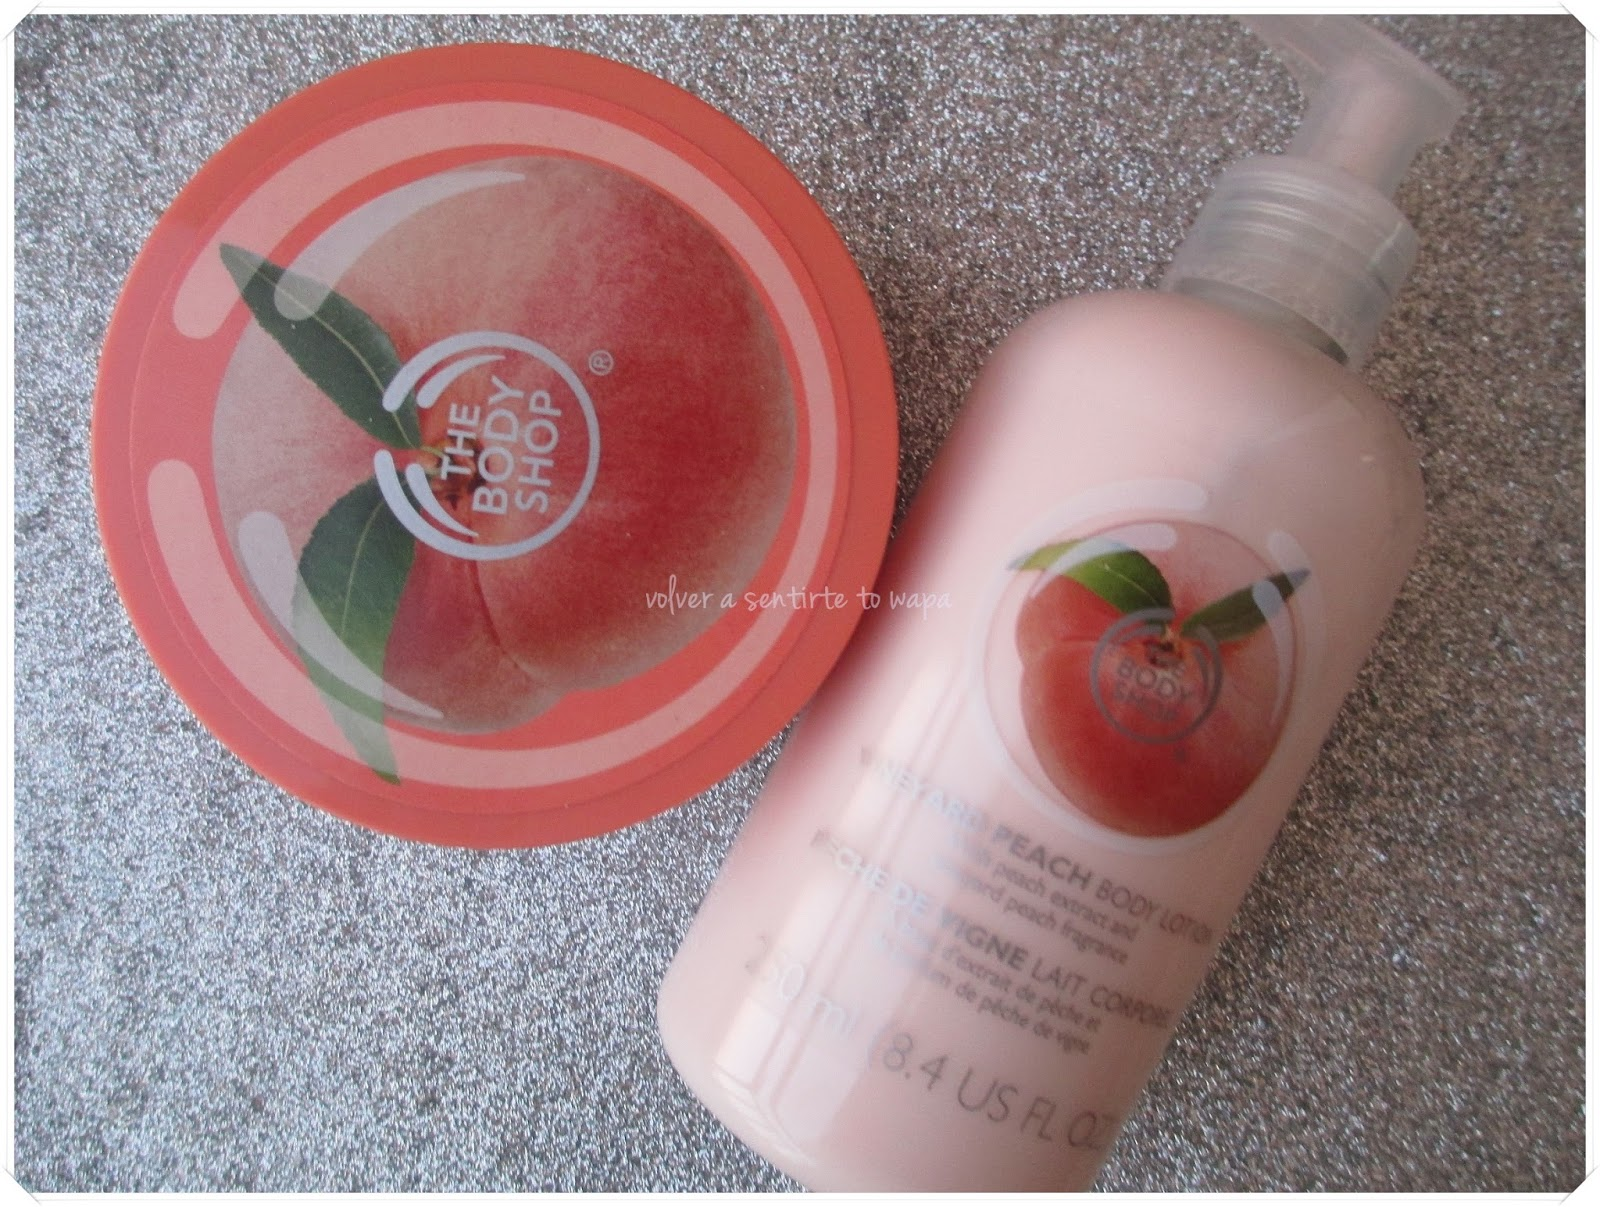 Rebajas en The Body Shop - Exfoliante corporal y leche de Melocotón